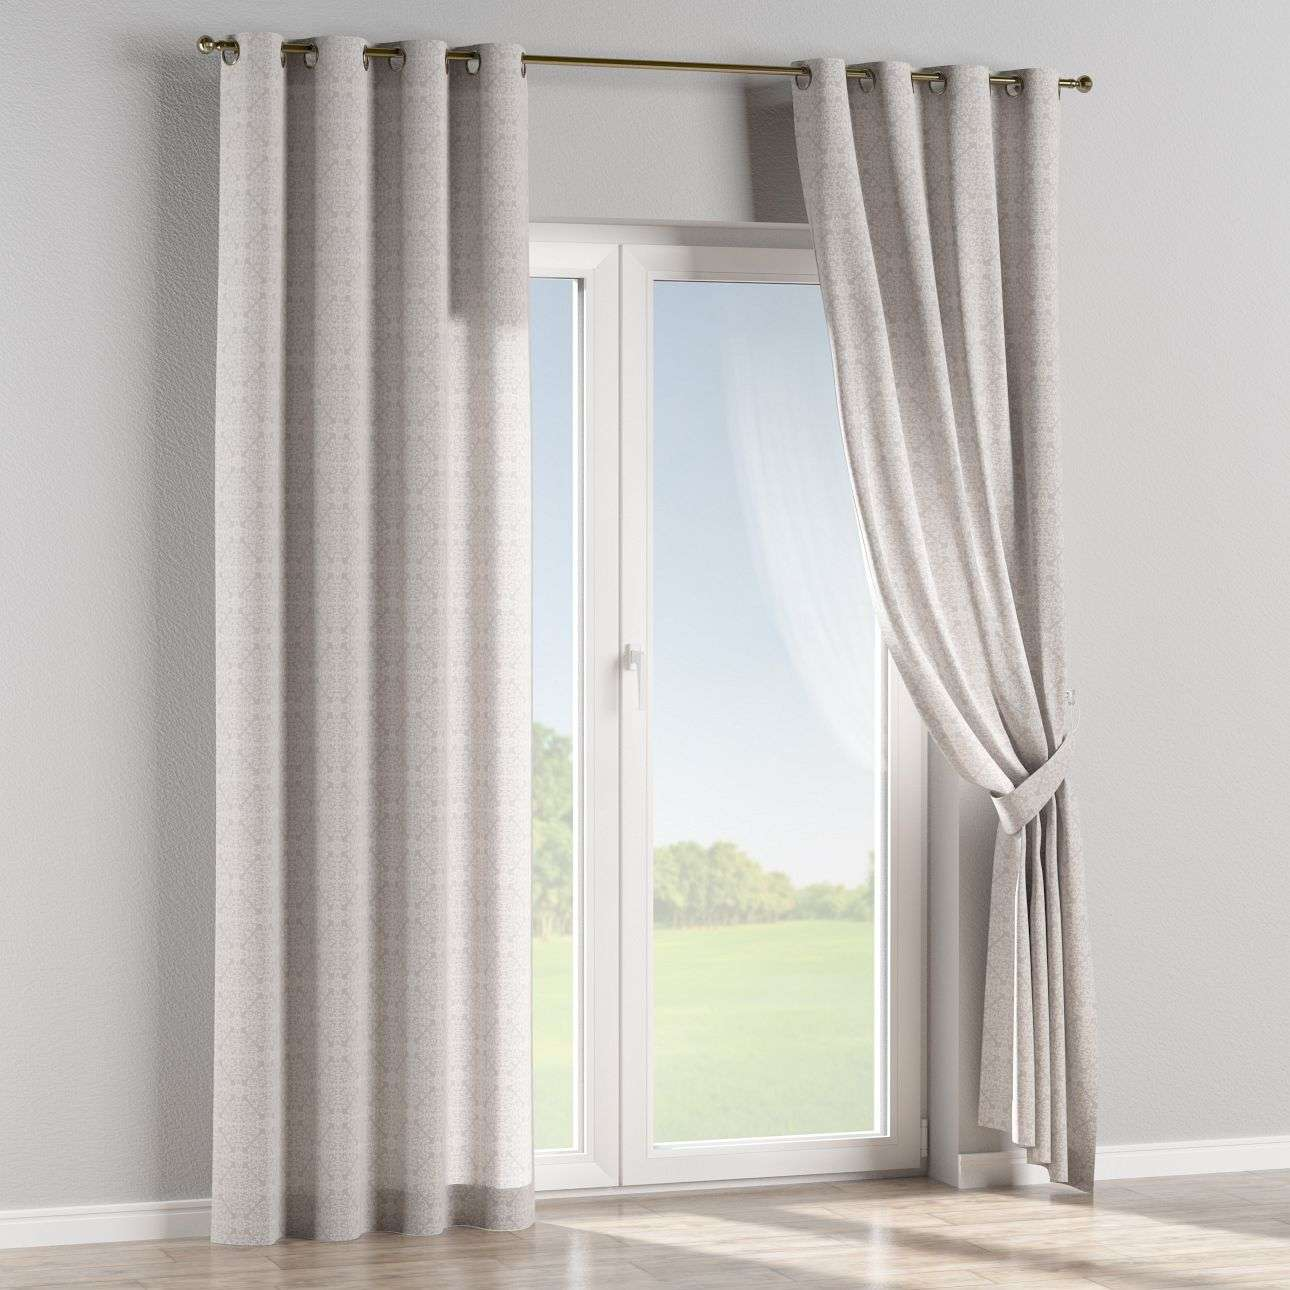 Eyelet curtains in collection Flowers, fabric: 140-38